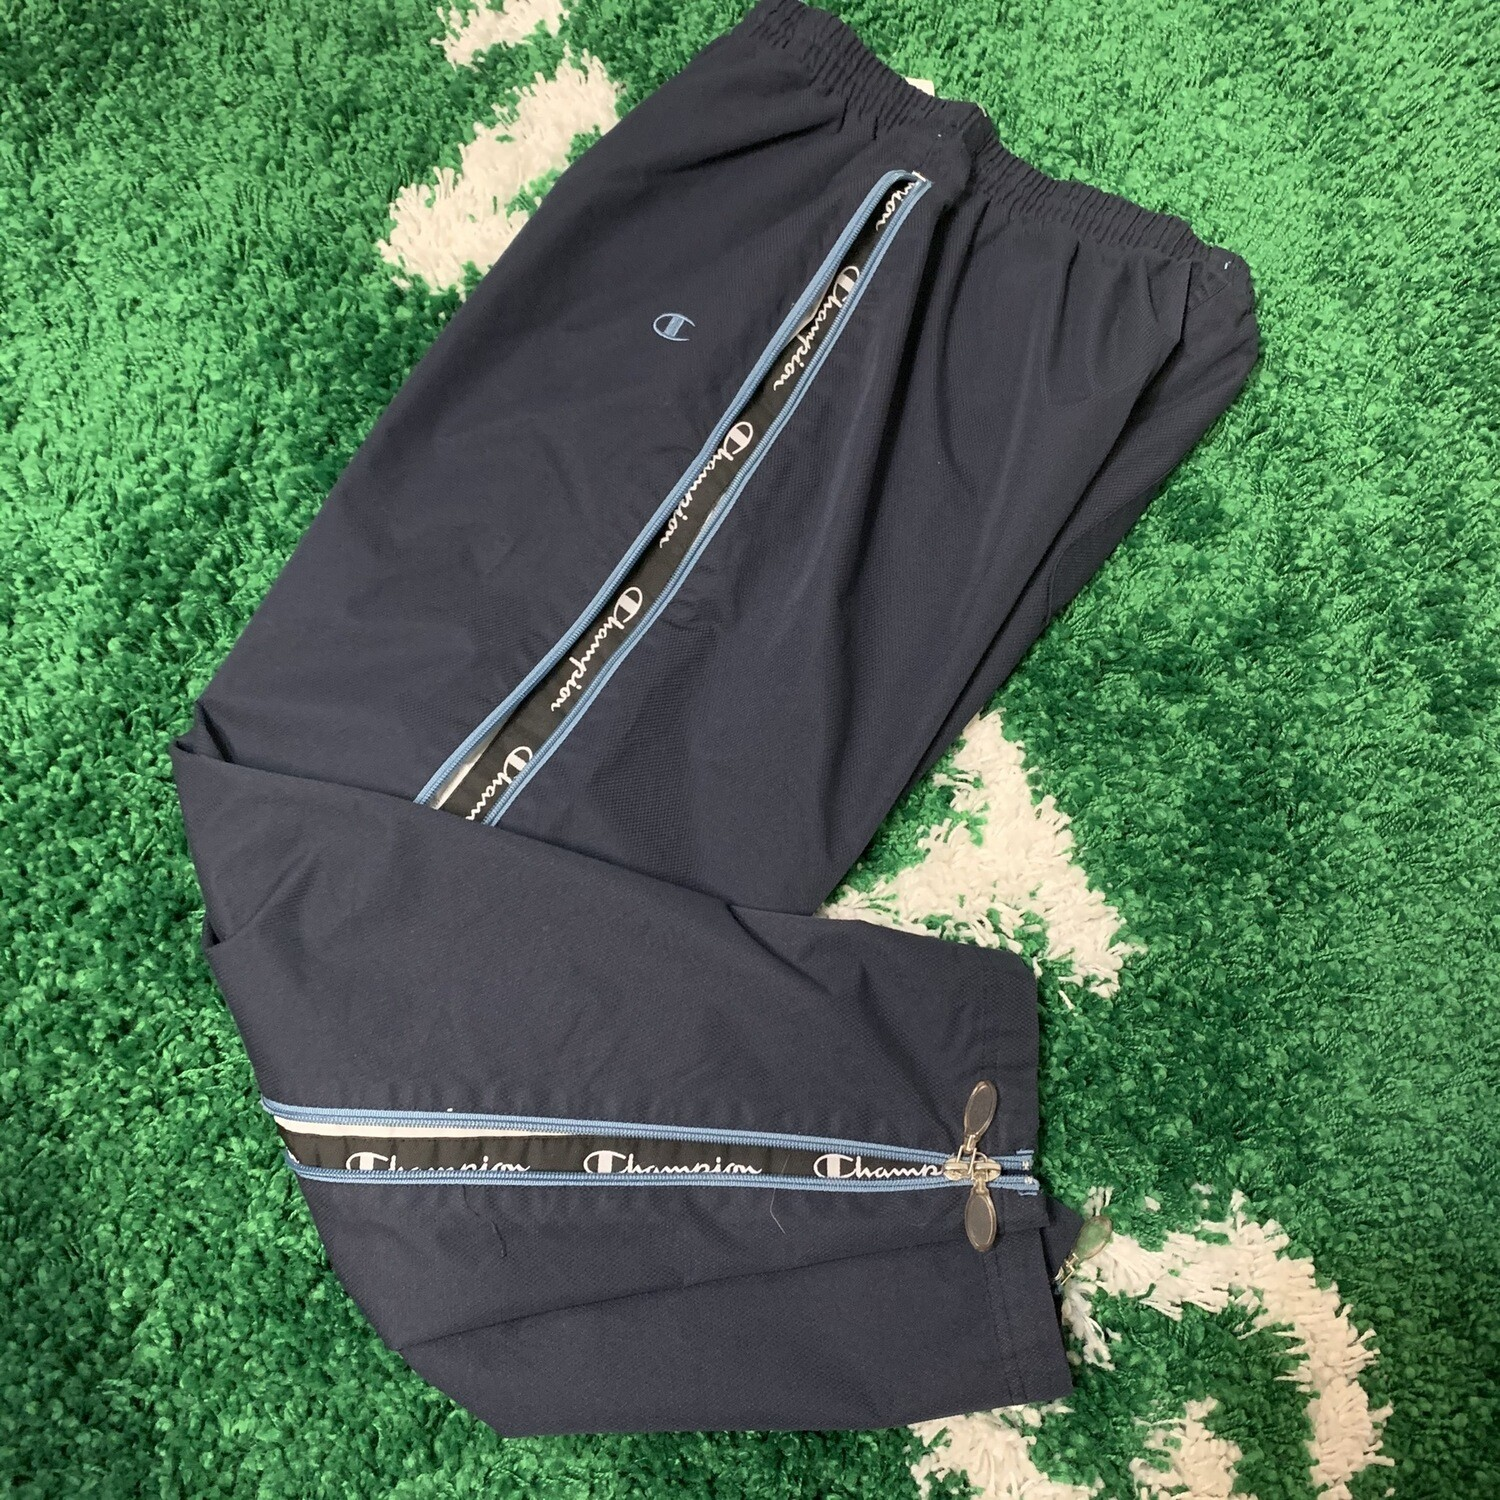 90s Champion Track Pants Size Medium